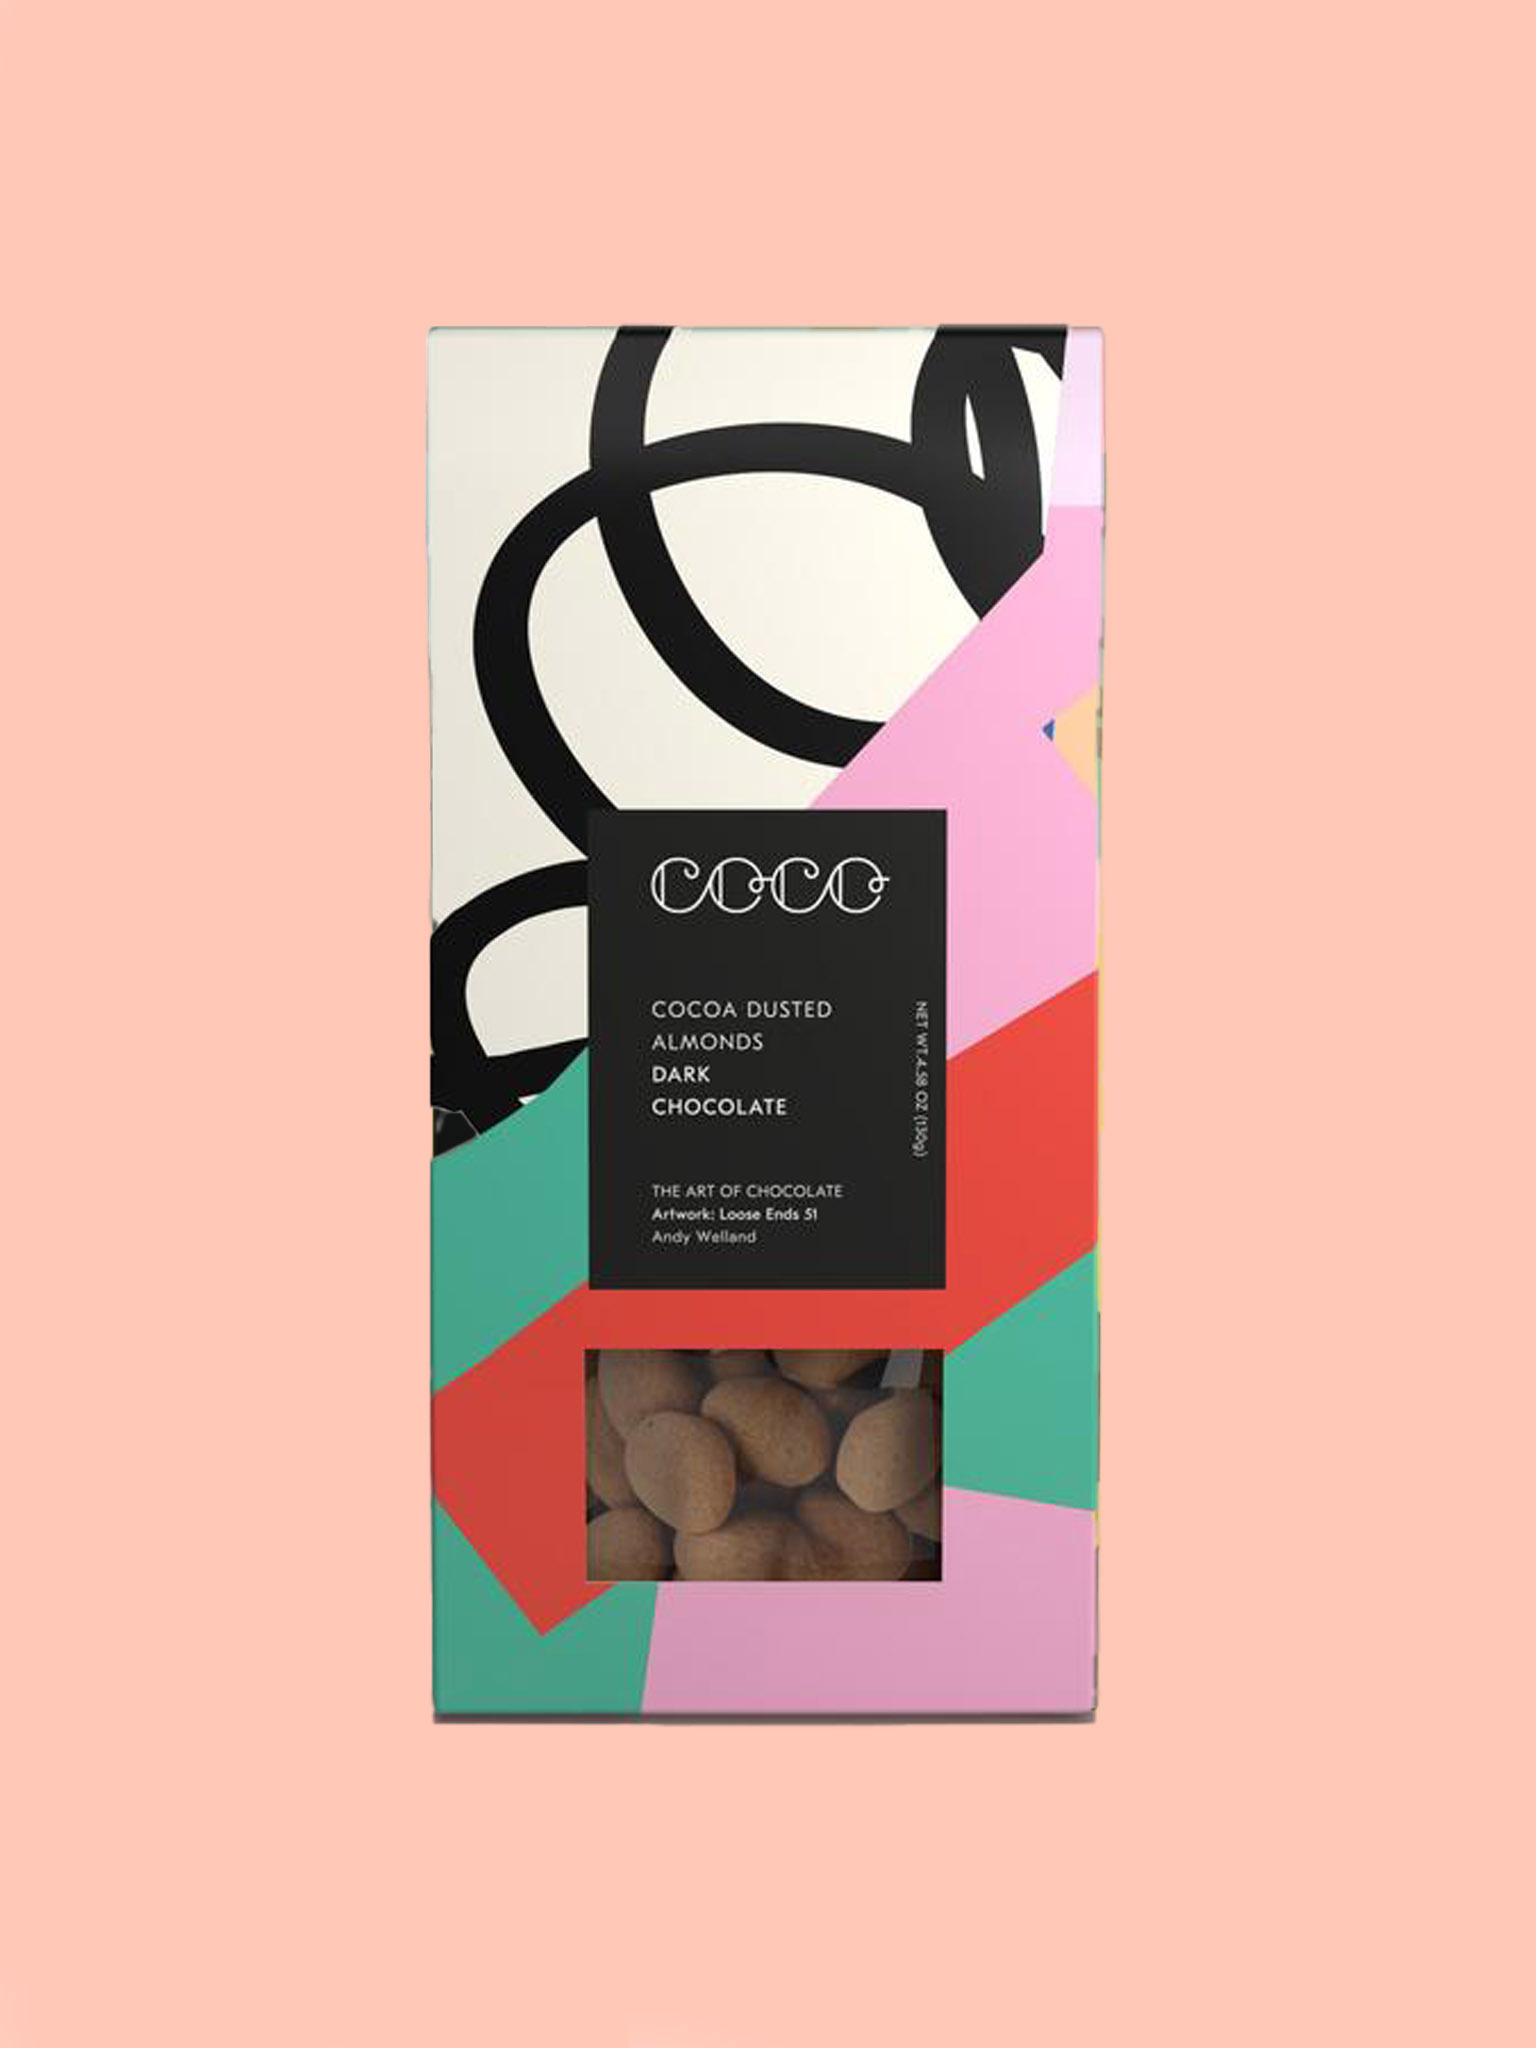 Coco Cocoa Dusted Almonds Dark Chocolate